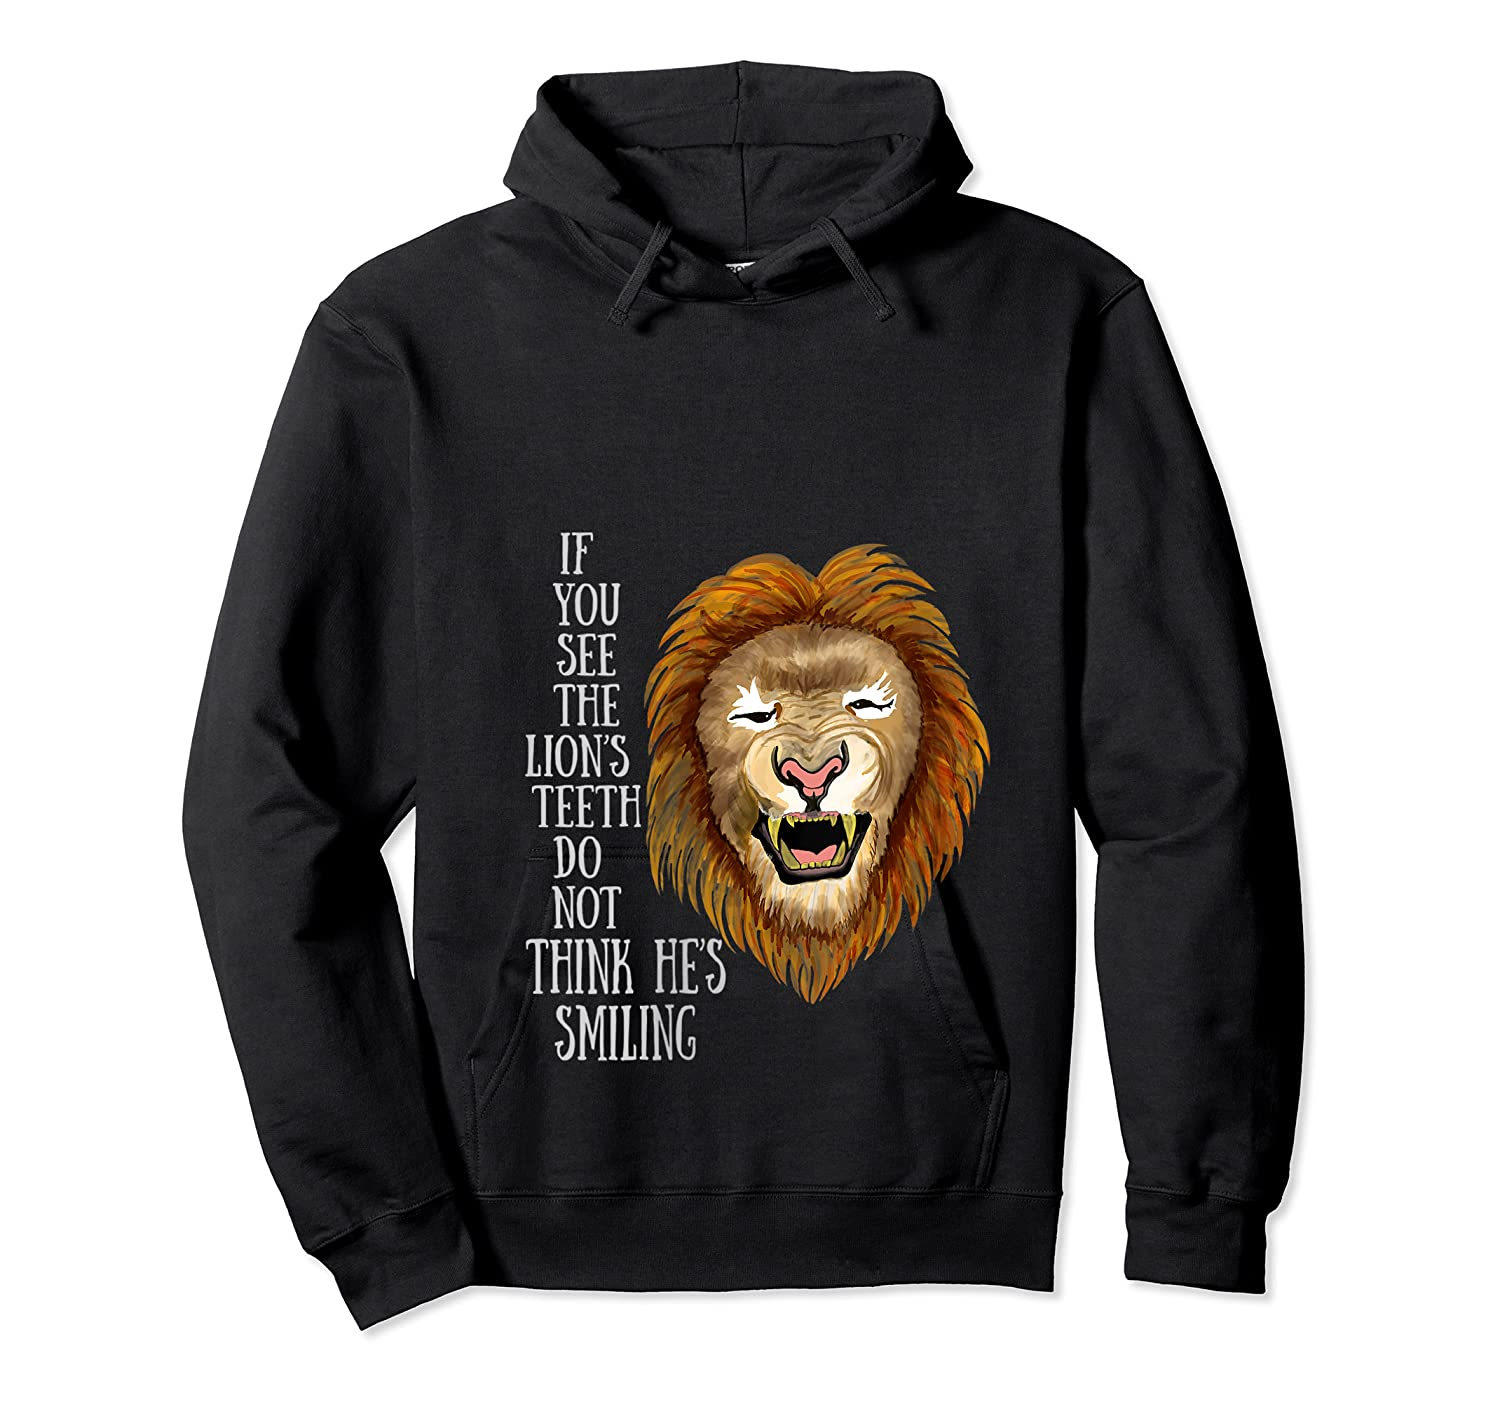 Lion, If You See The Lion's Th Do Not Think He's Smiling Shirts Unisex Pullover Hoodie